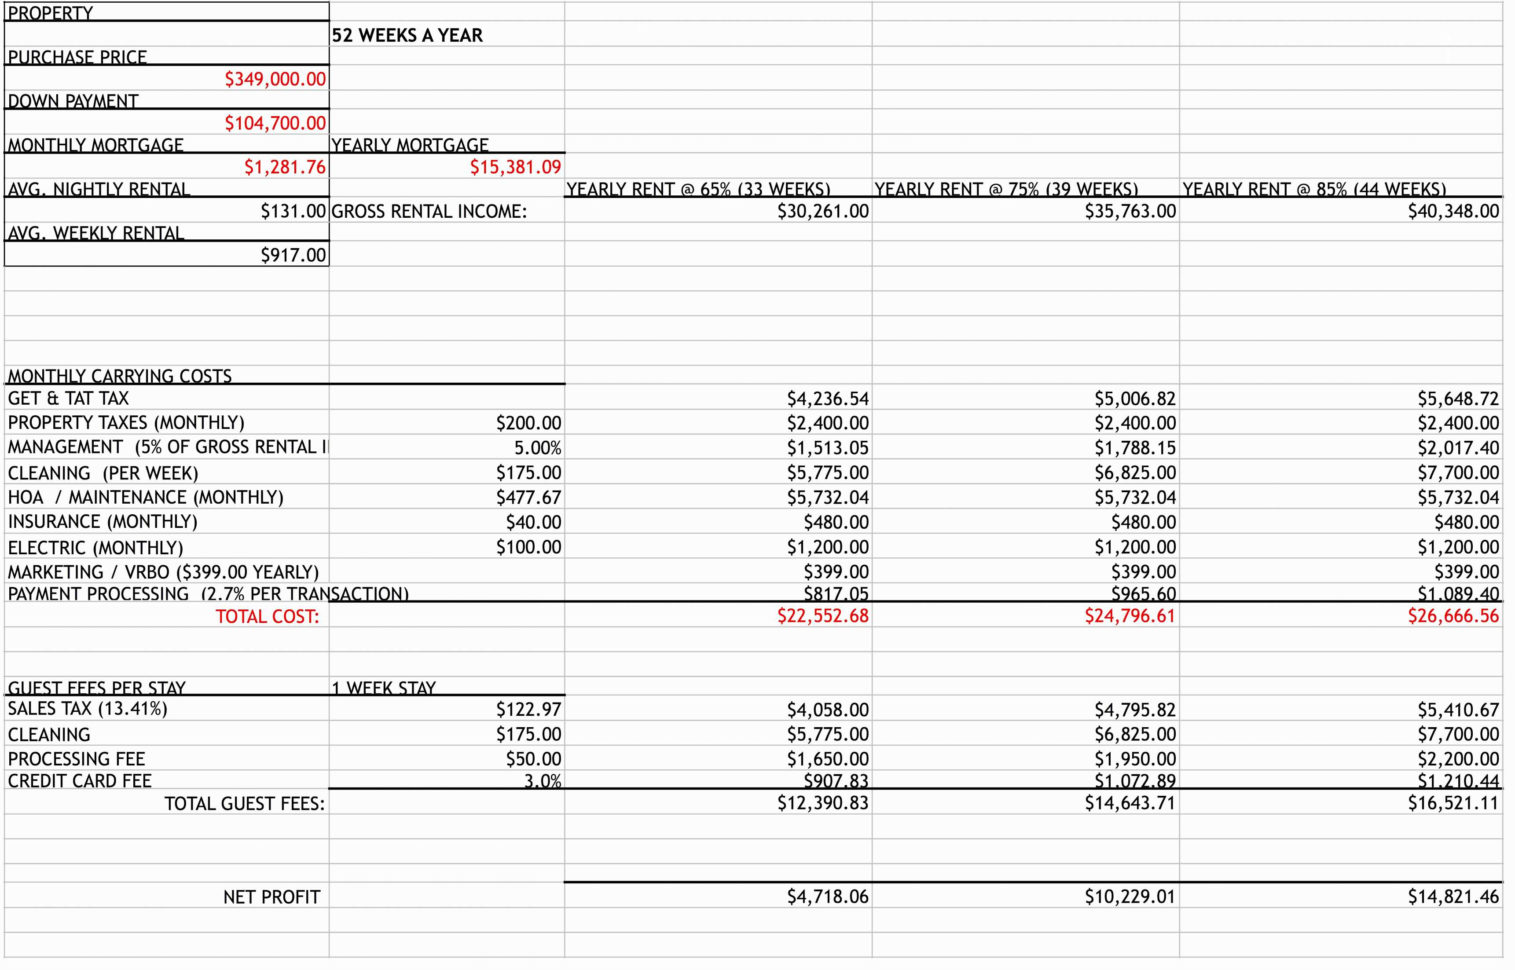 Realtor Expenses Spreadsheet Pertaining To Realtor Expense Tracking Spreadsheet Fresh Real Estate Expense Sheet